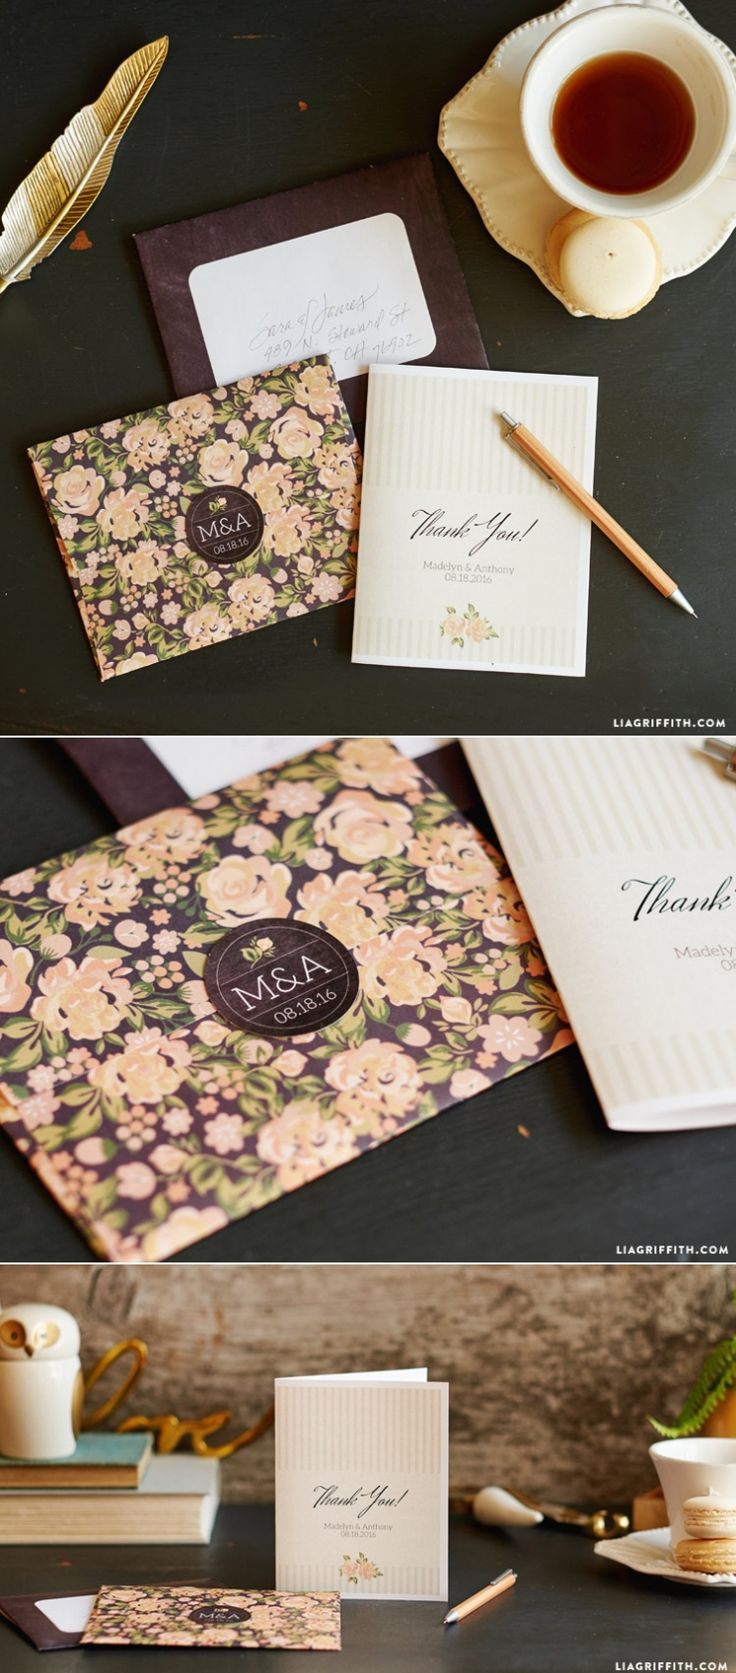 how to make wedding invitation card in microsoft word007%0A Vintage Wedding Thank You Cards